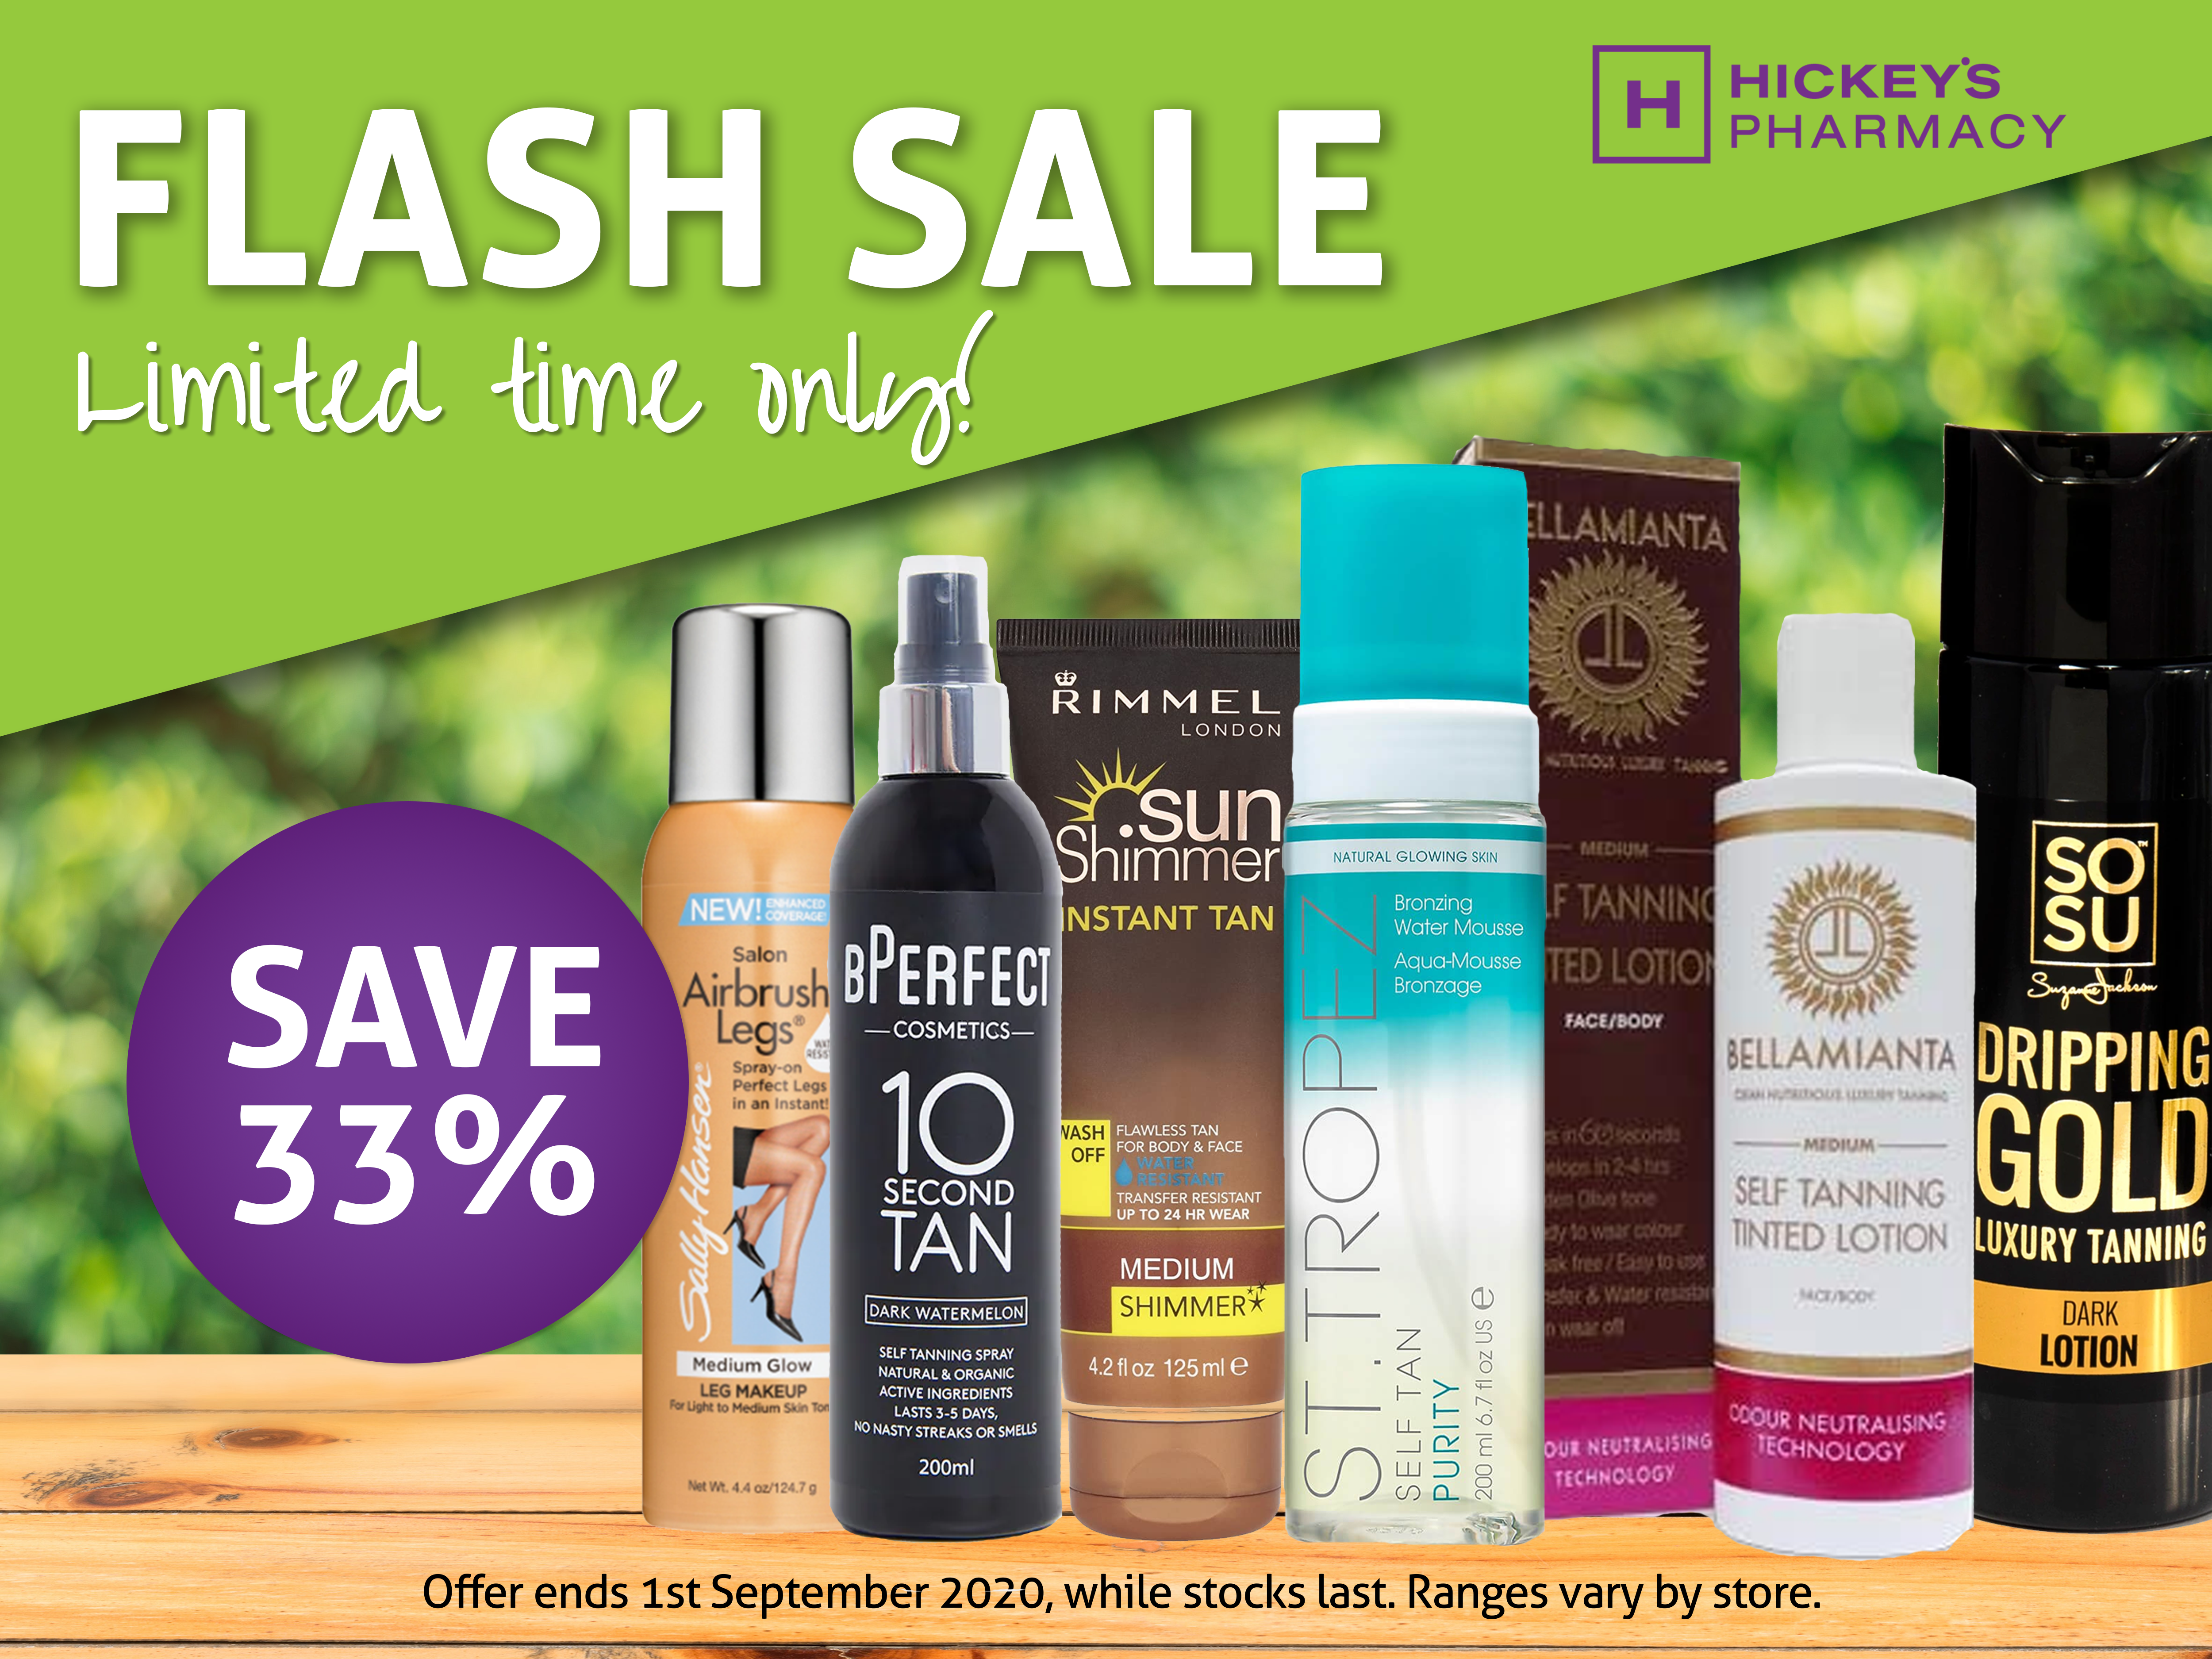 FLASH SALE NOW ON at Hickeys Pharmacy!